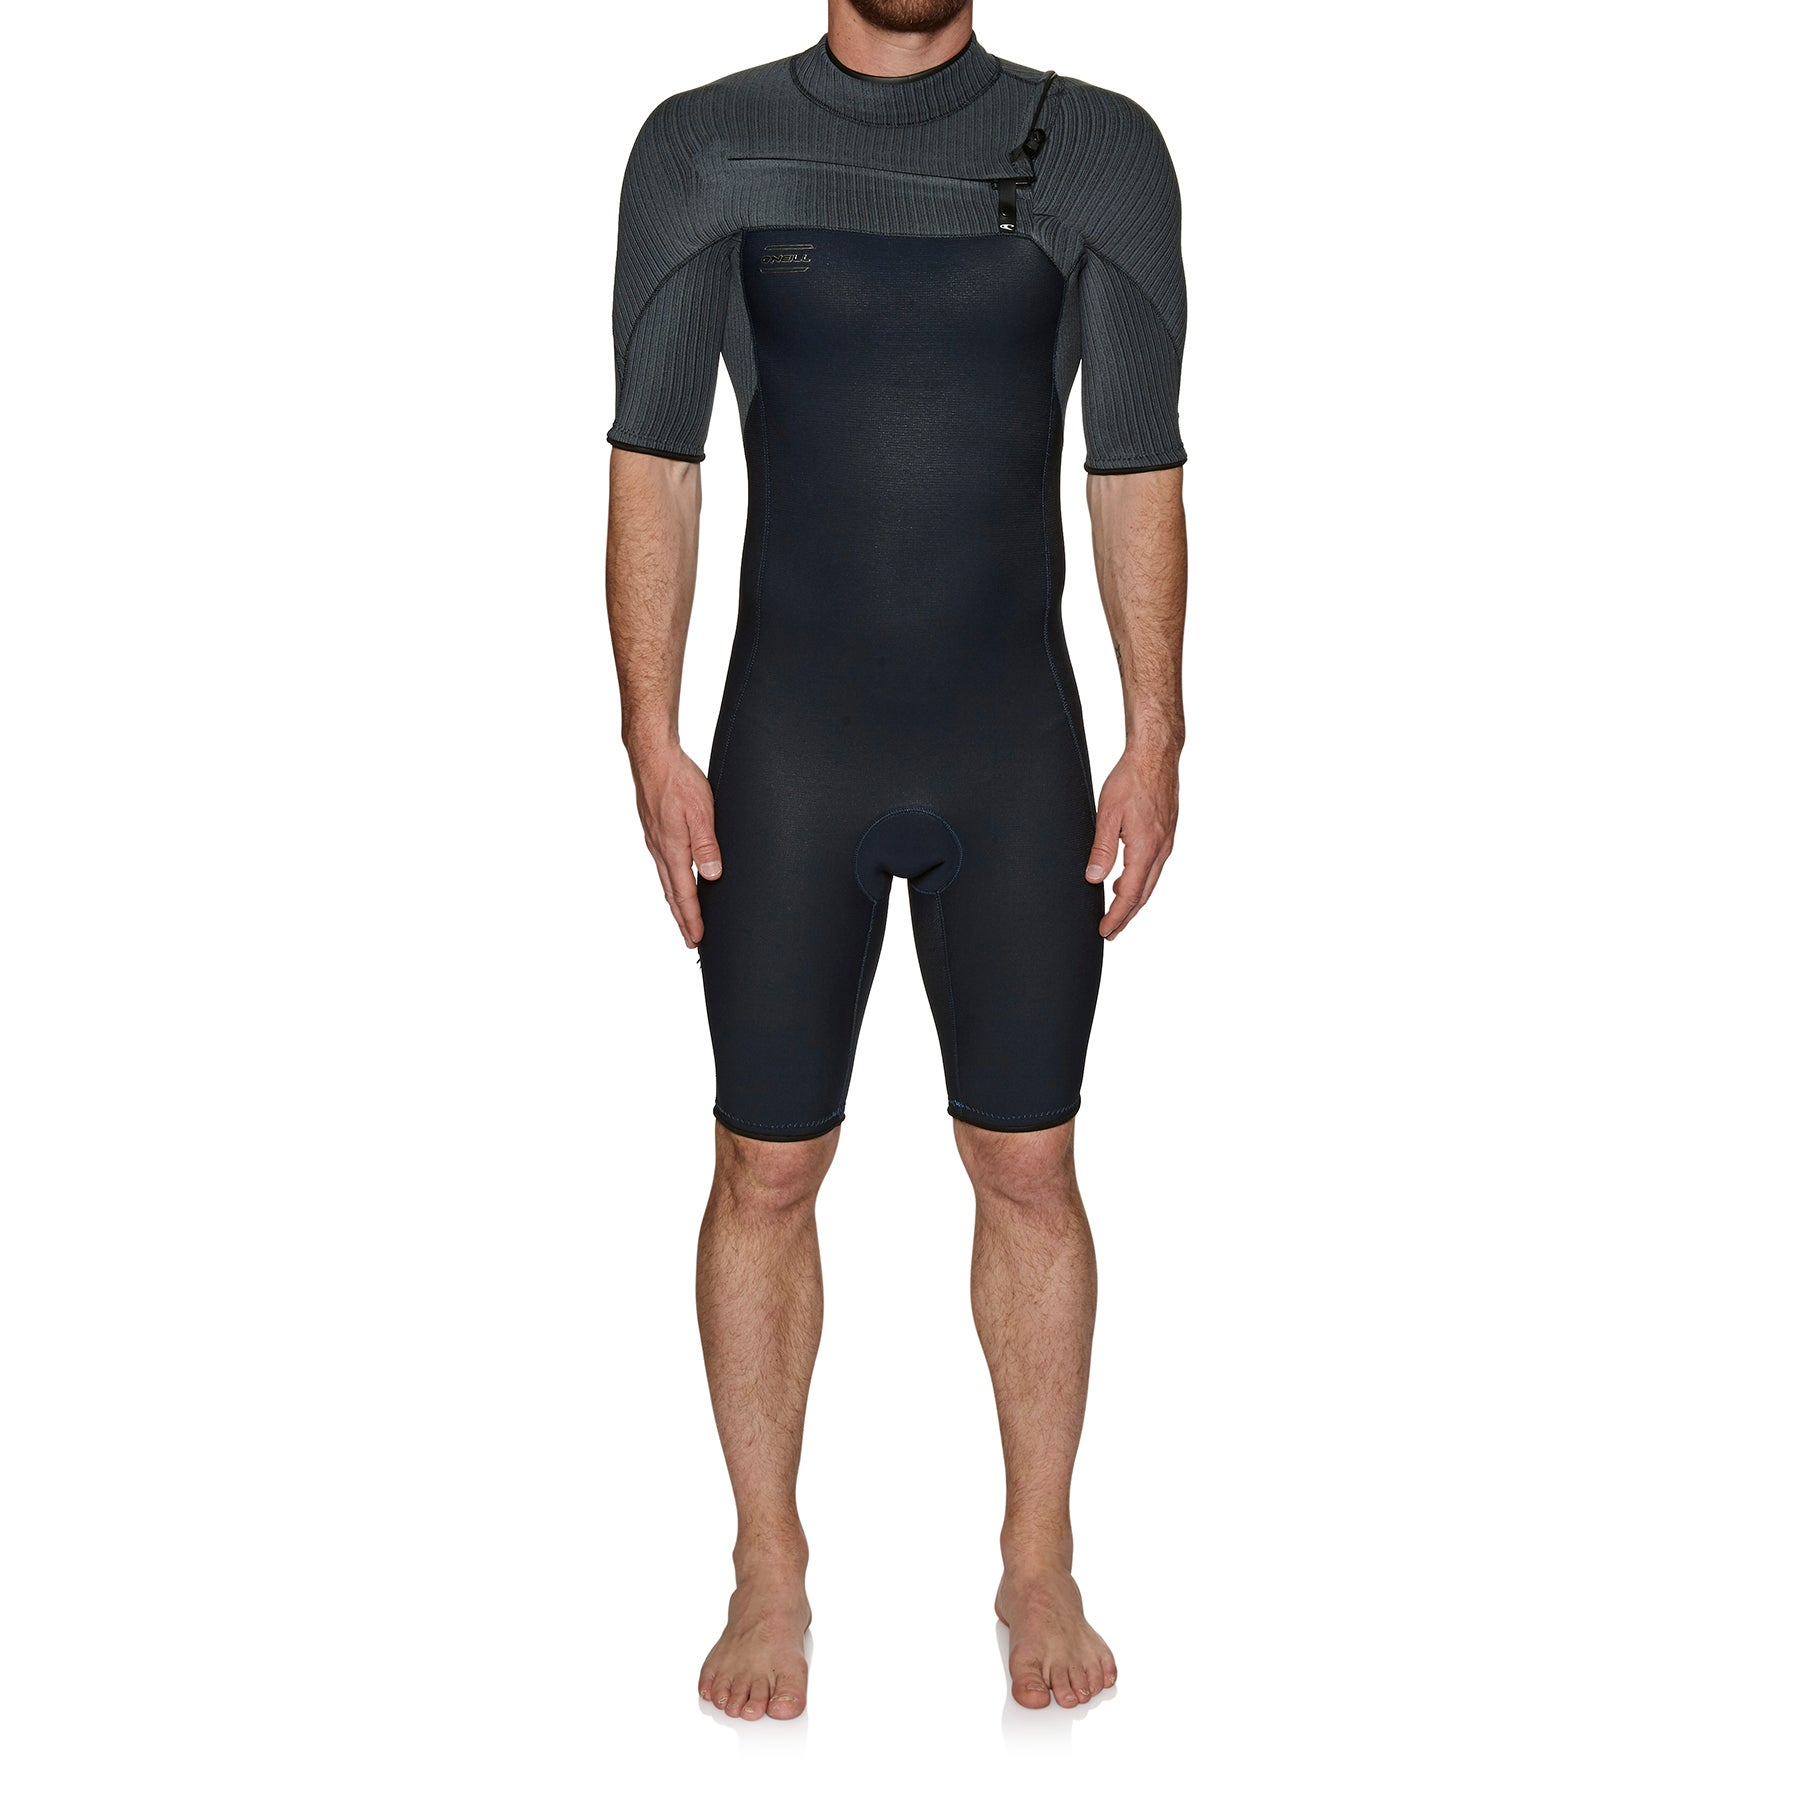 O Neill Hyperfreak 2mm Chest Zip S/s Spring Wetsuit